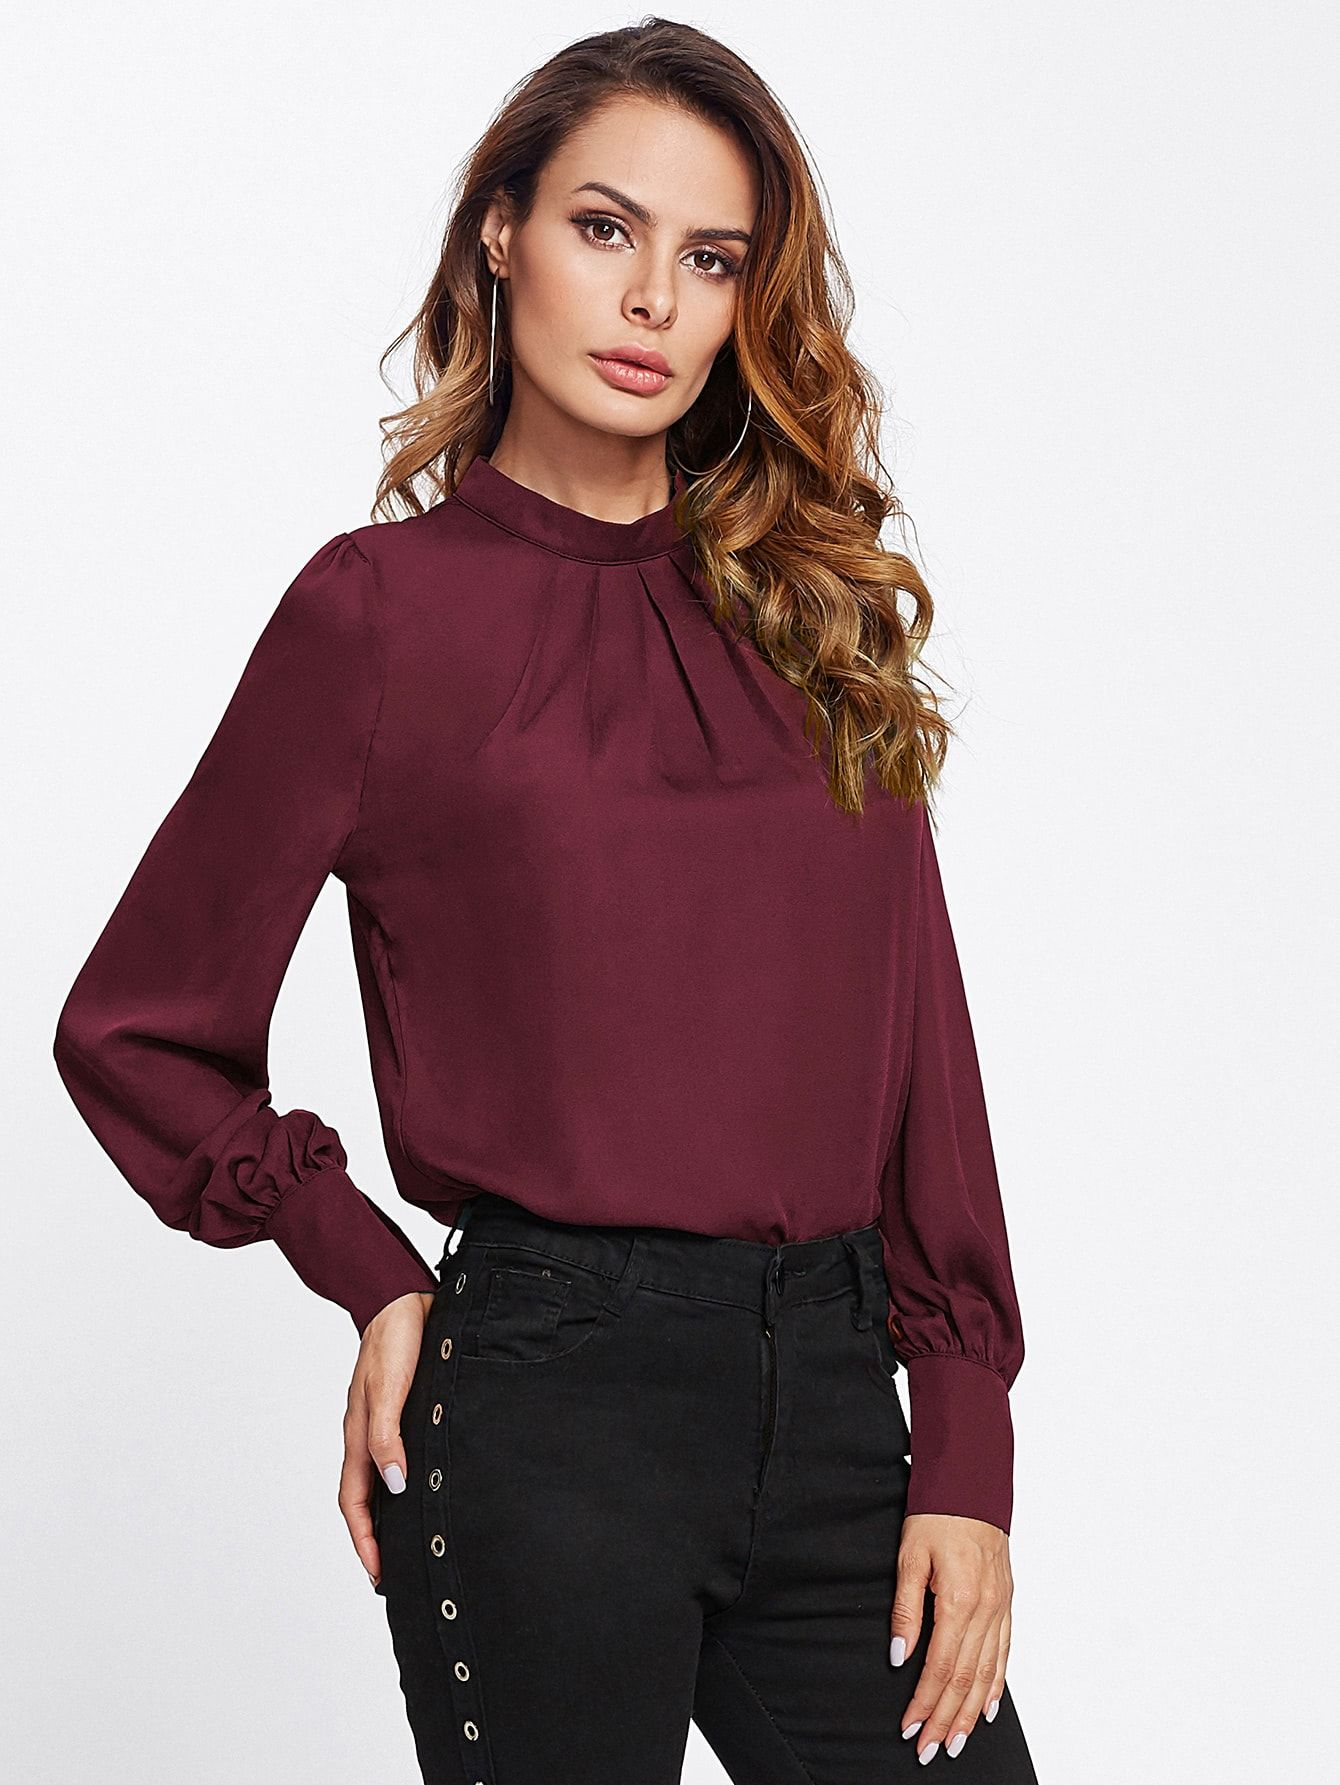 b753ffbb04a Classy Plain Top Regular Fit Stand Collar Long Sleeve Puff Sleeve ...